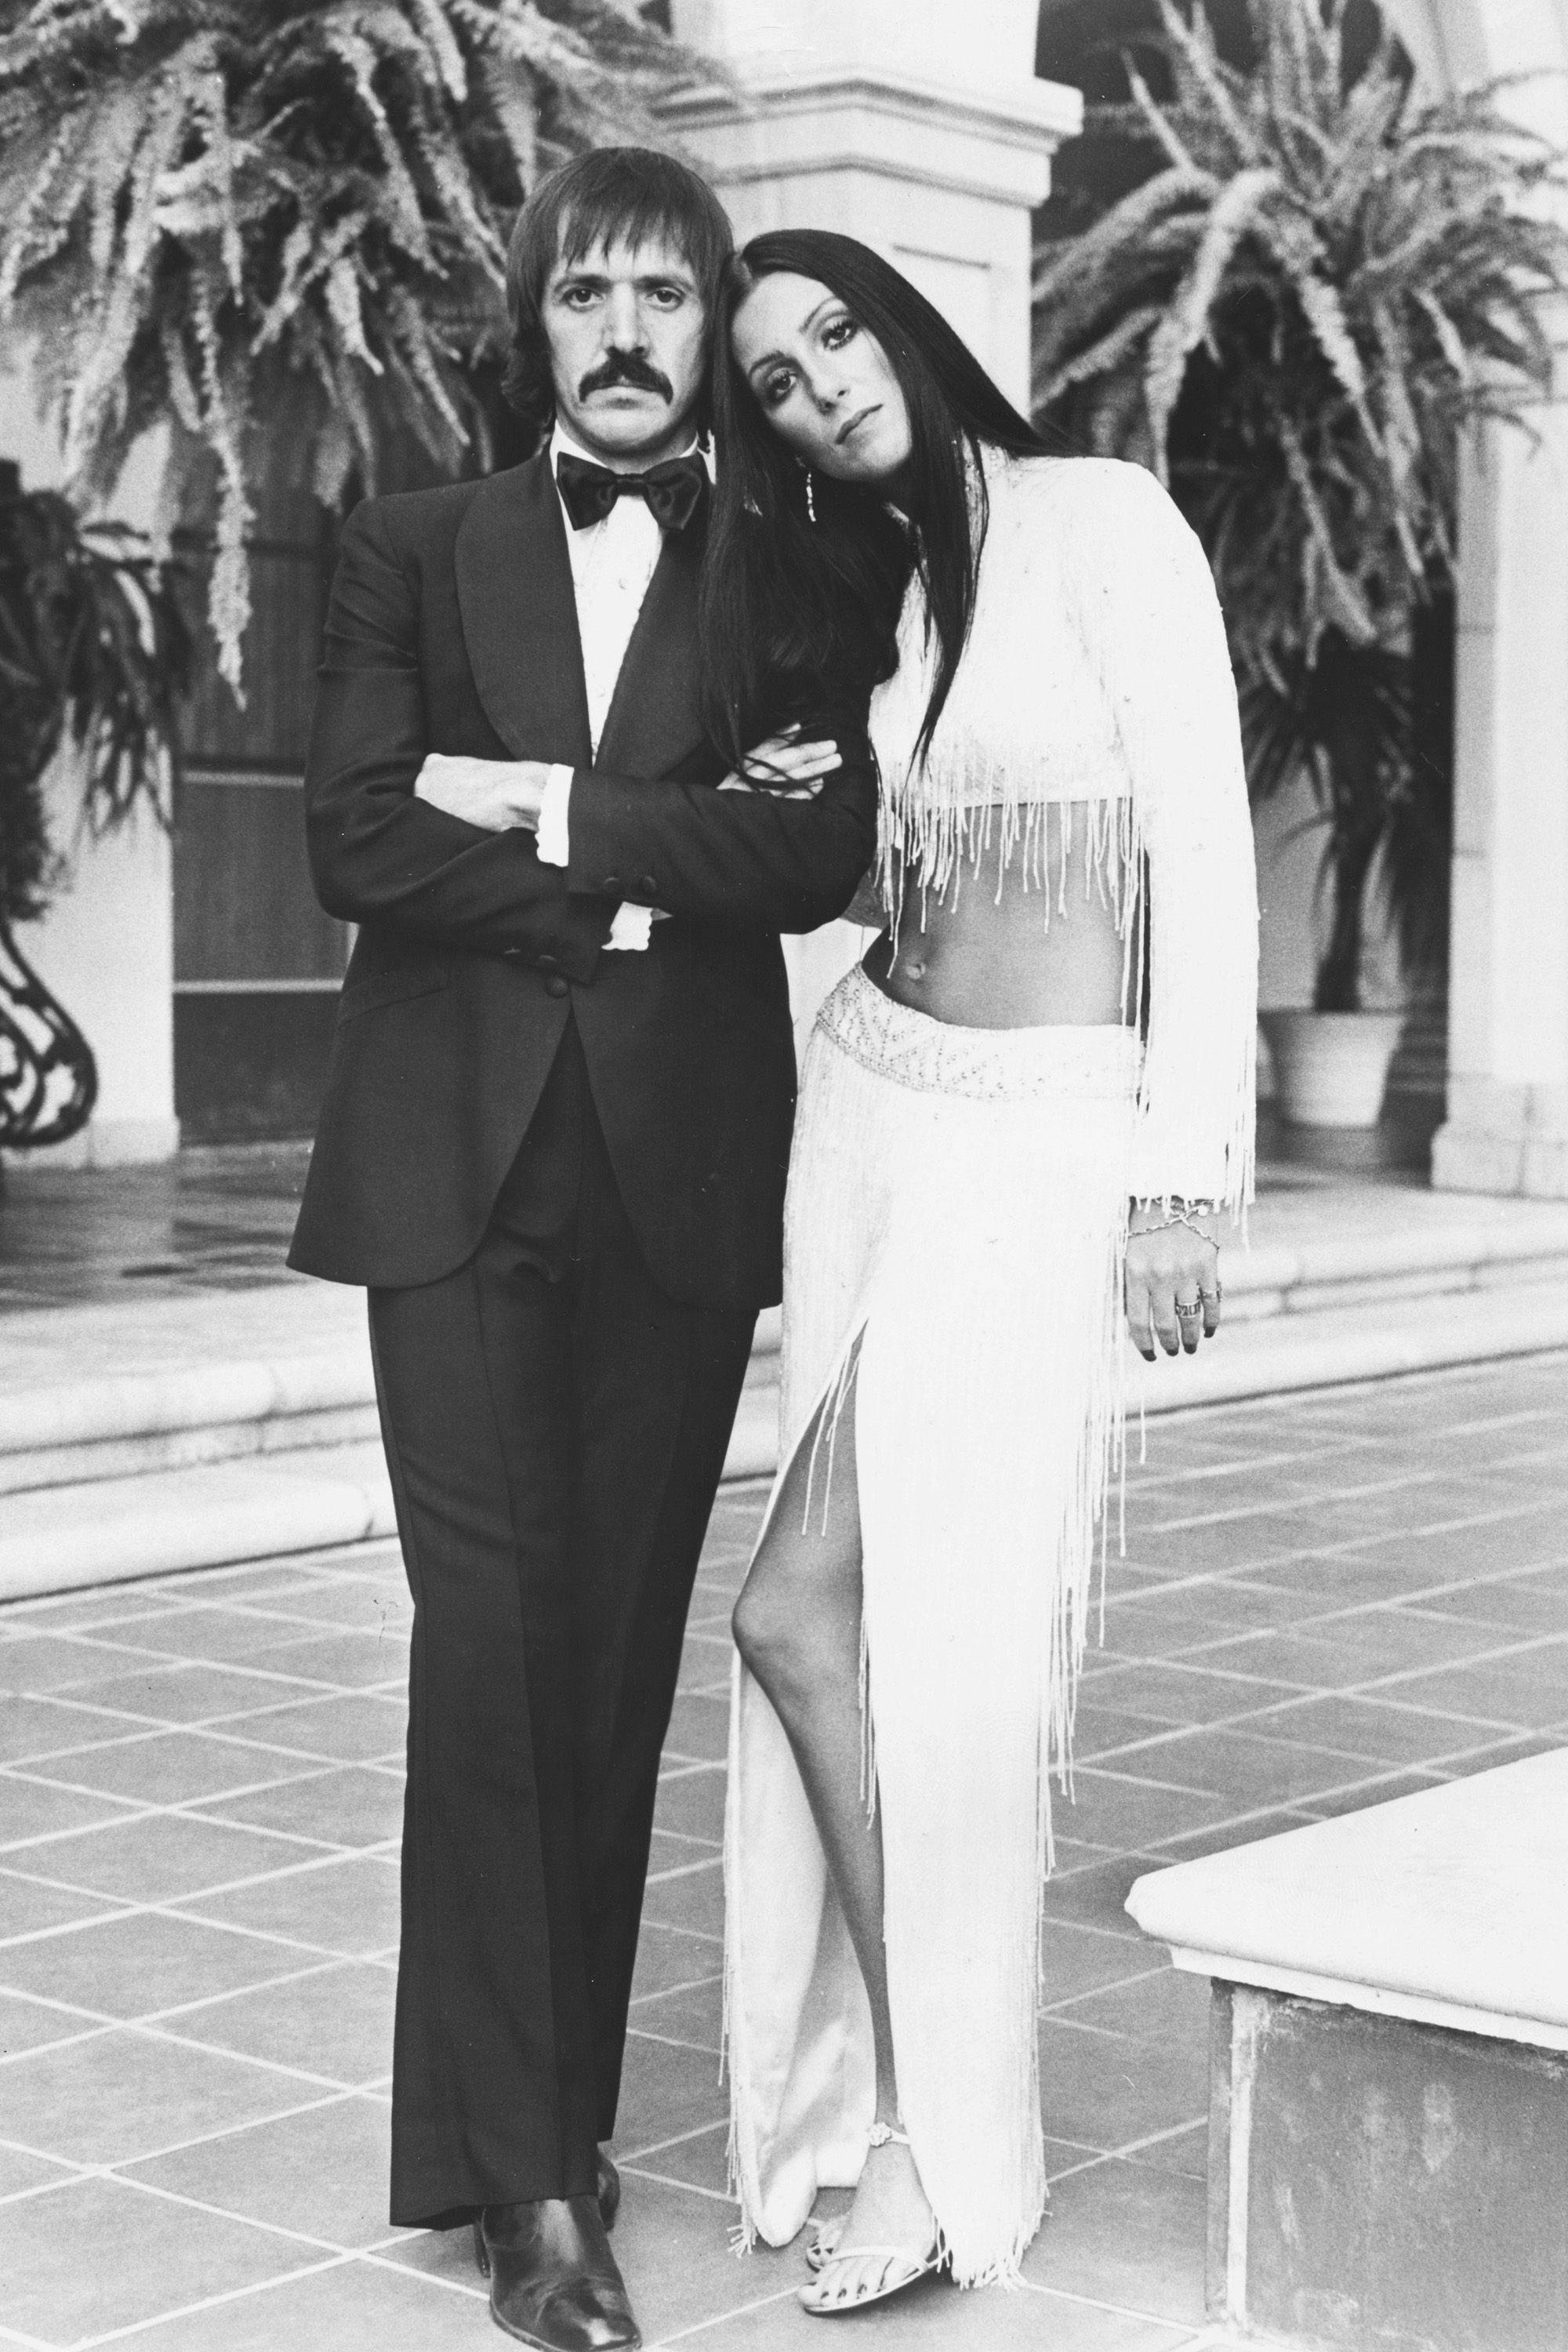 Portrait of singing duo Sonny Bono and Cher, wearing formal dress on an outdoor patio, circa 1975. (Photo by Archive Photos/Moviepix/Getty Images)